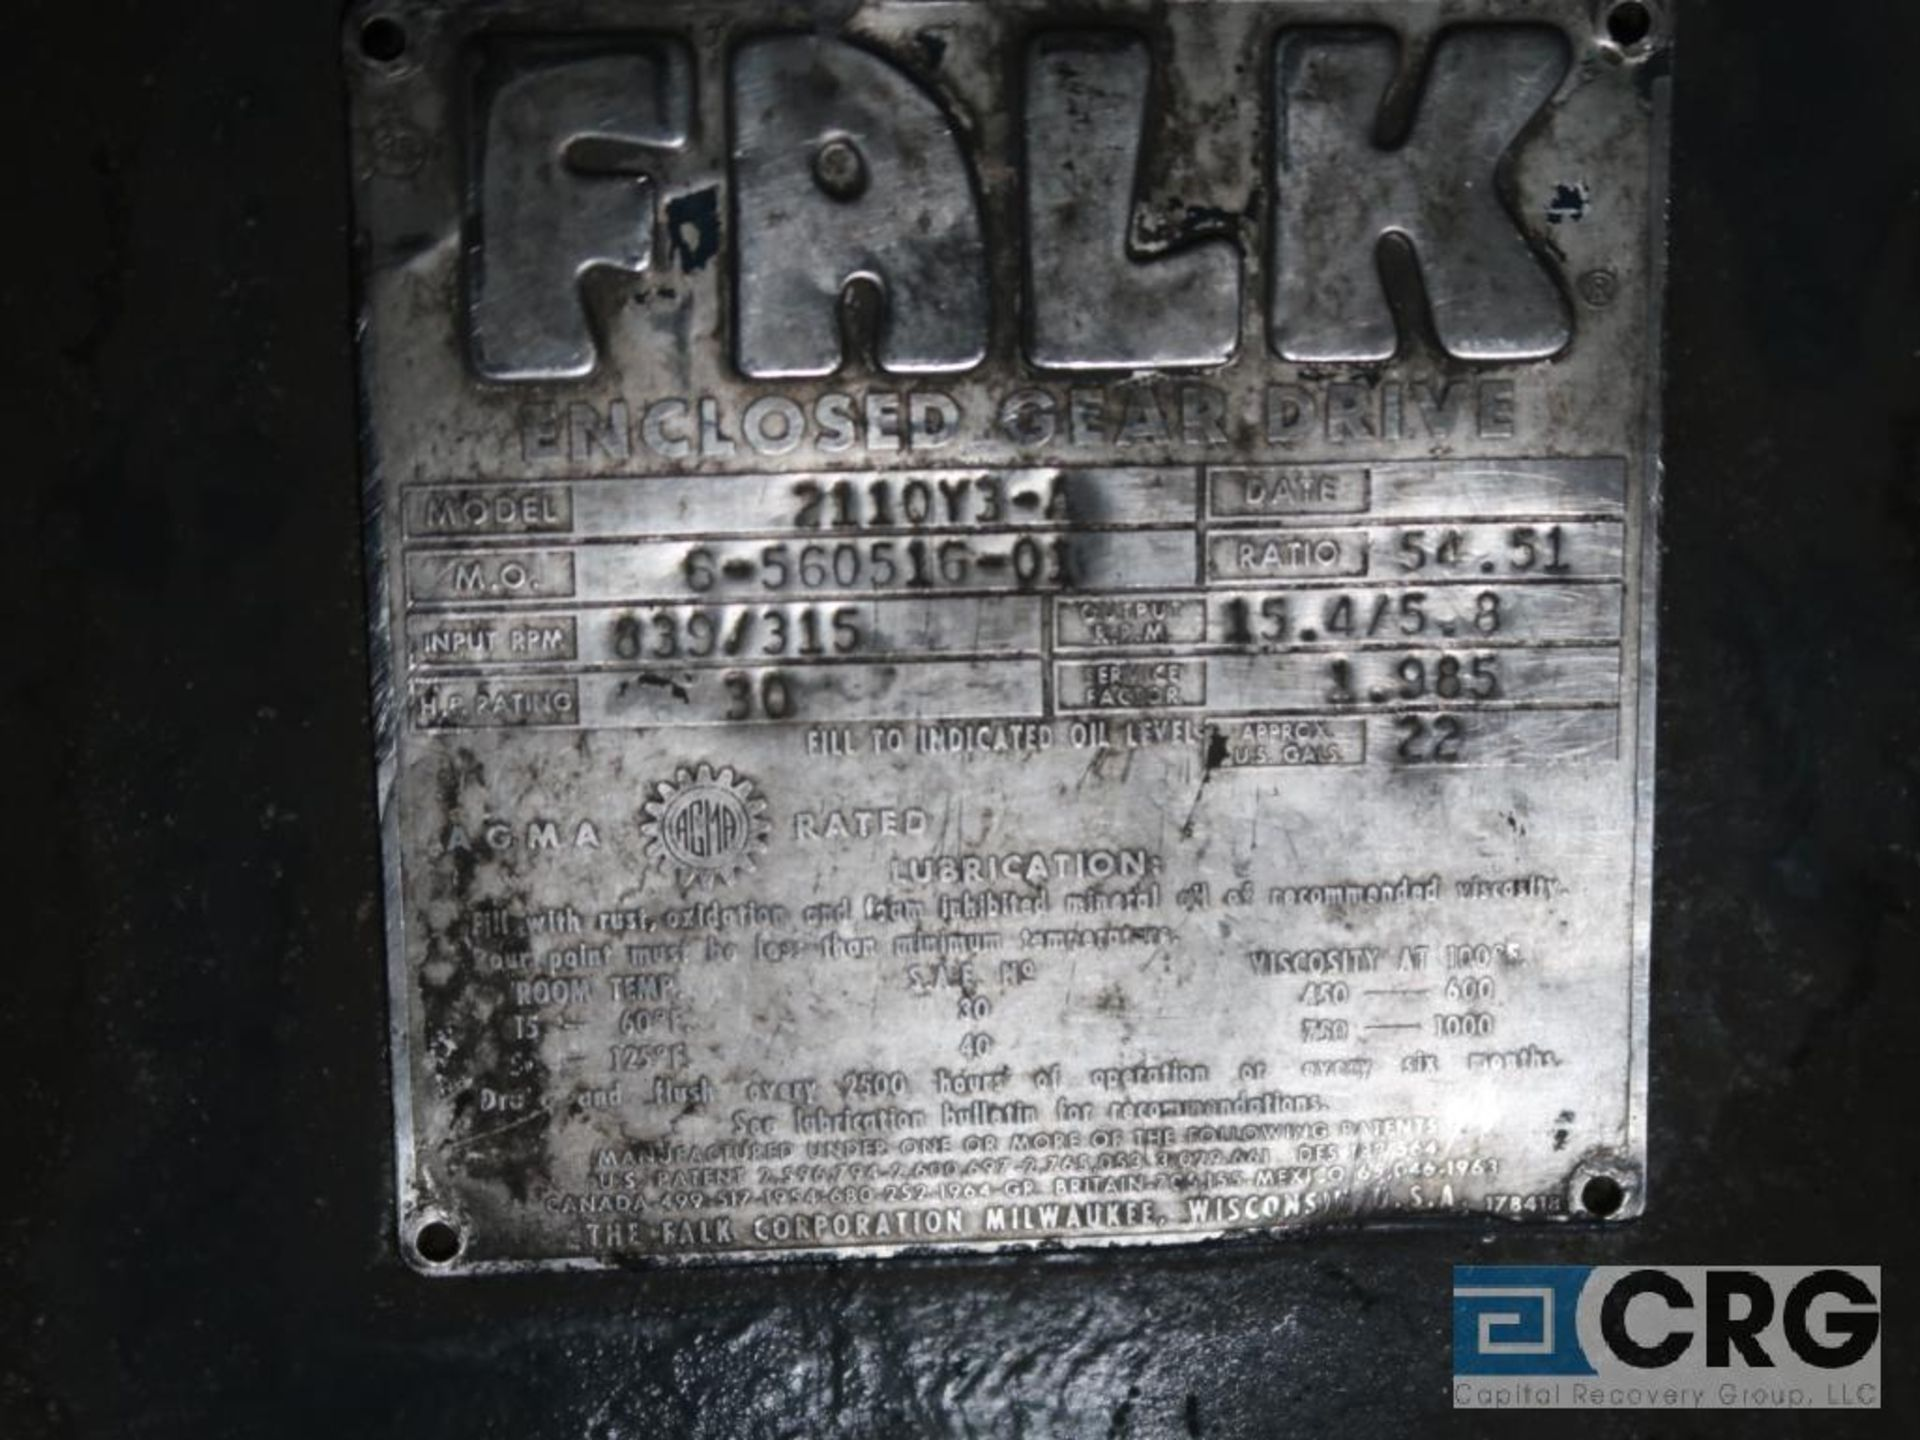 Falk 2110 Y3A gear drive, ratio-54.51, input RPM 839/315, output RPM 15.4/5.8, service rate HP. - Image 3 of 3